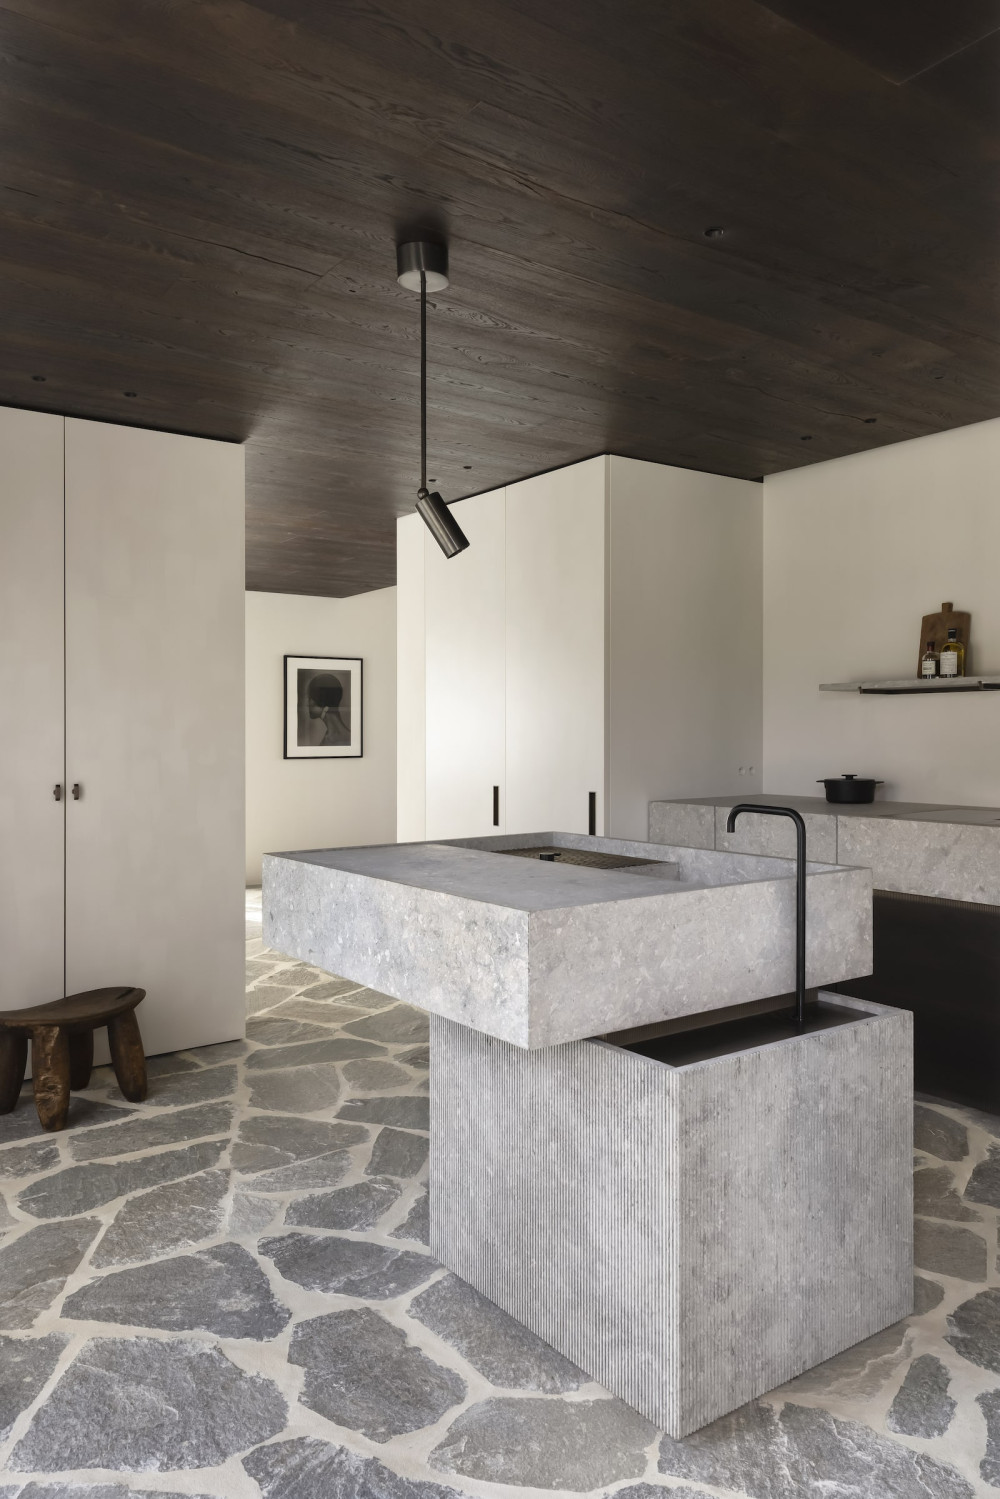 ignant-architecture-andy-kerstens-mud-residence-02.jpg